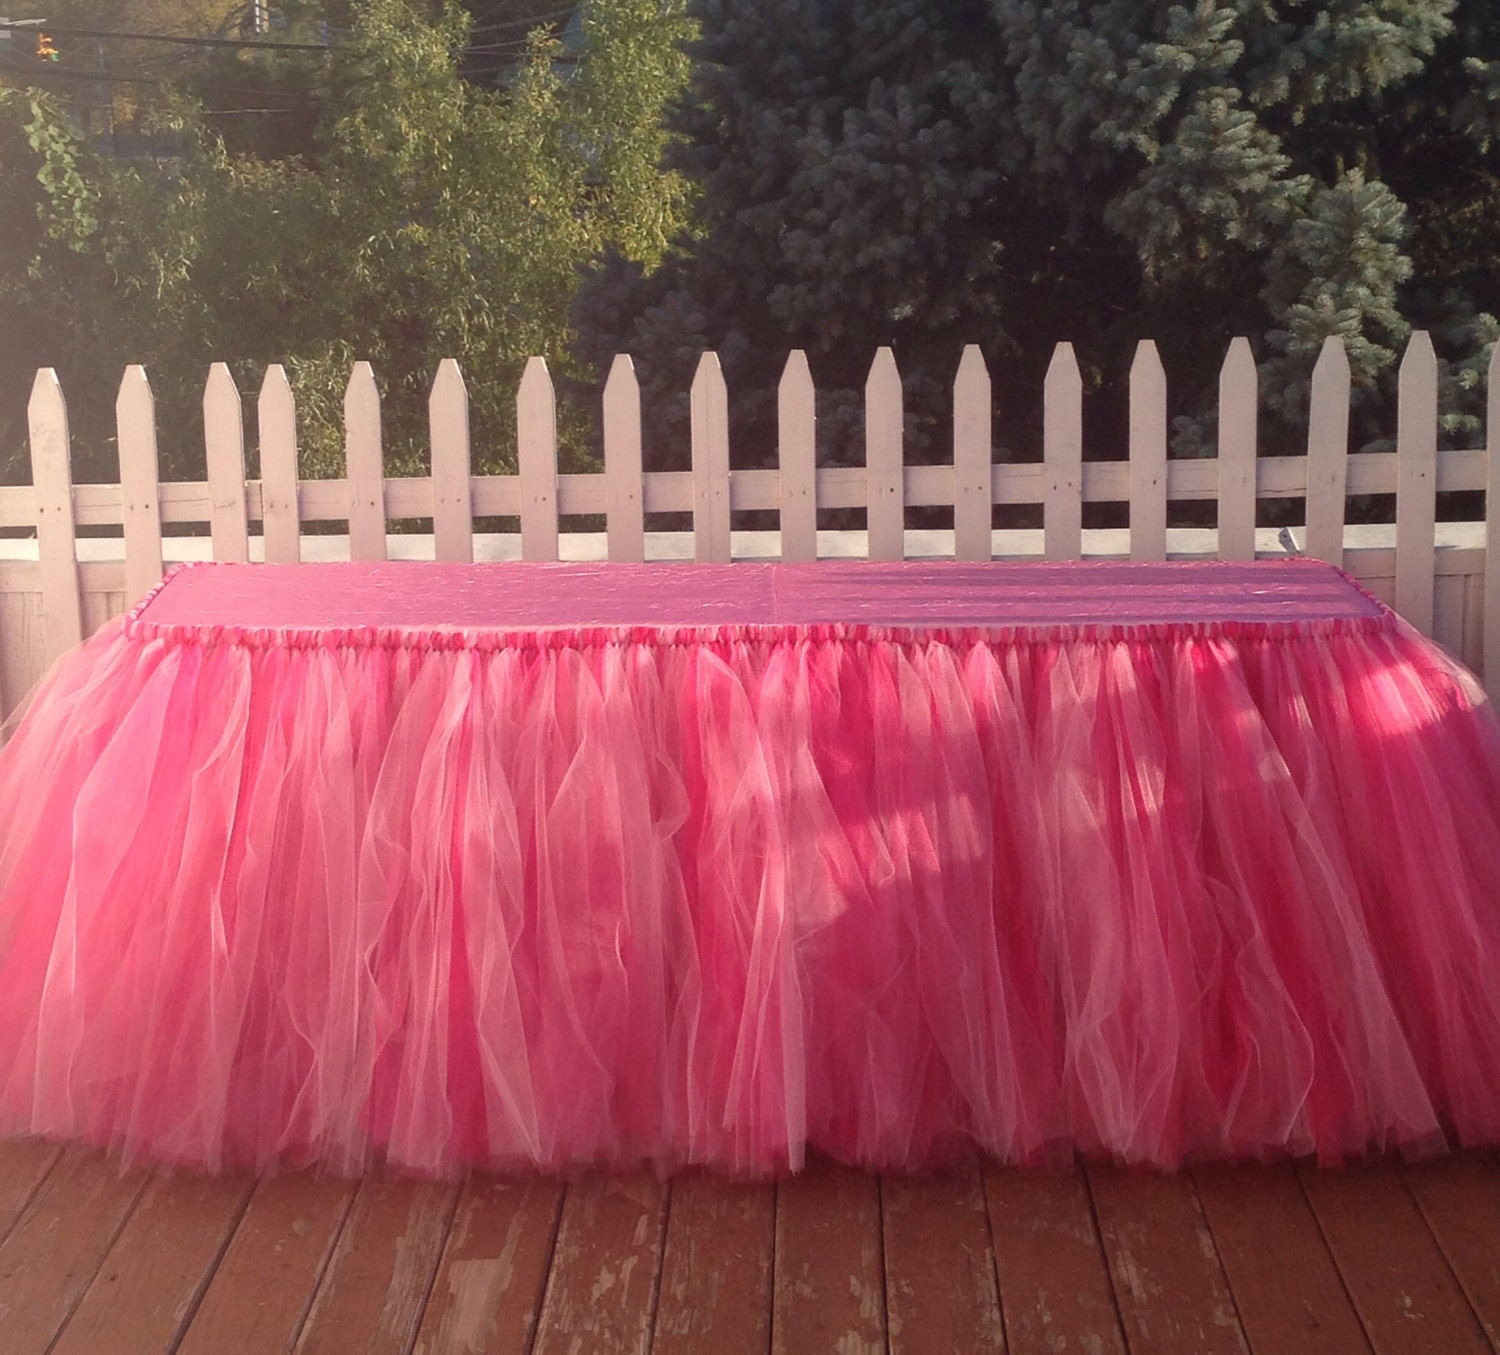 17 Feet Tulle Tableclothtutu Table Skirtstutu Party